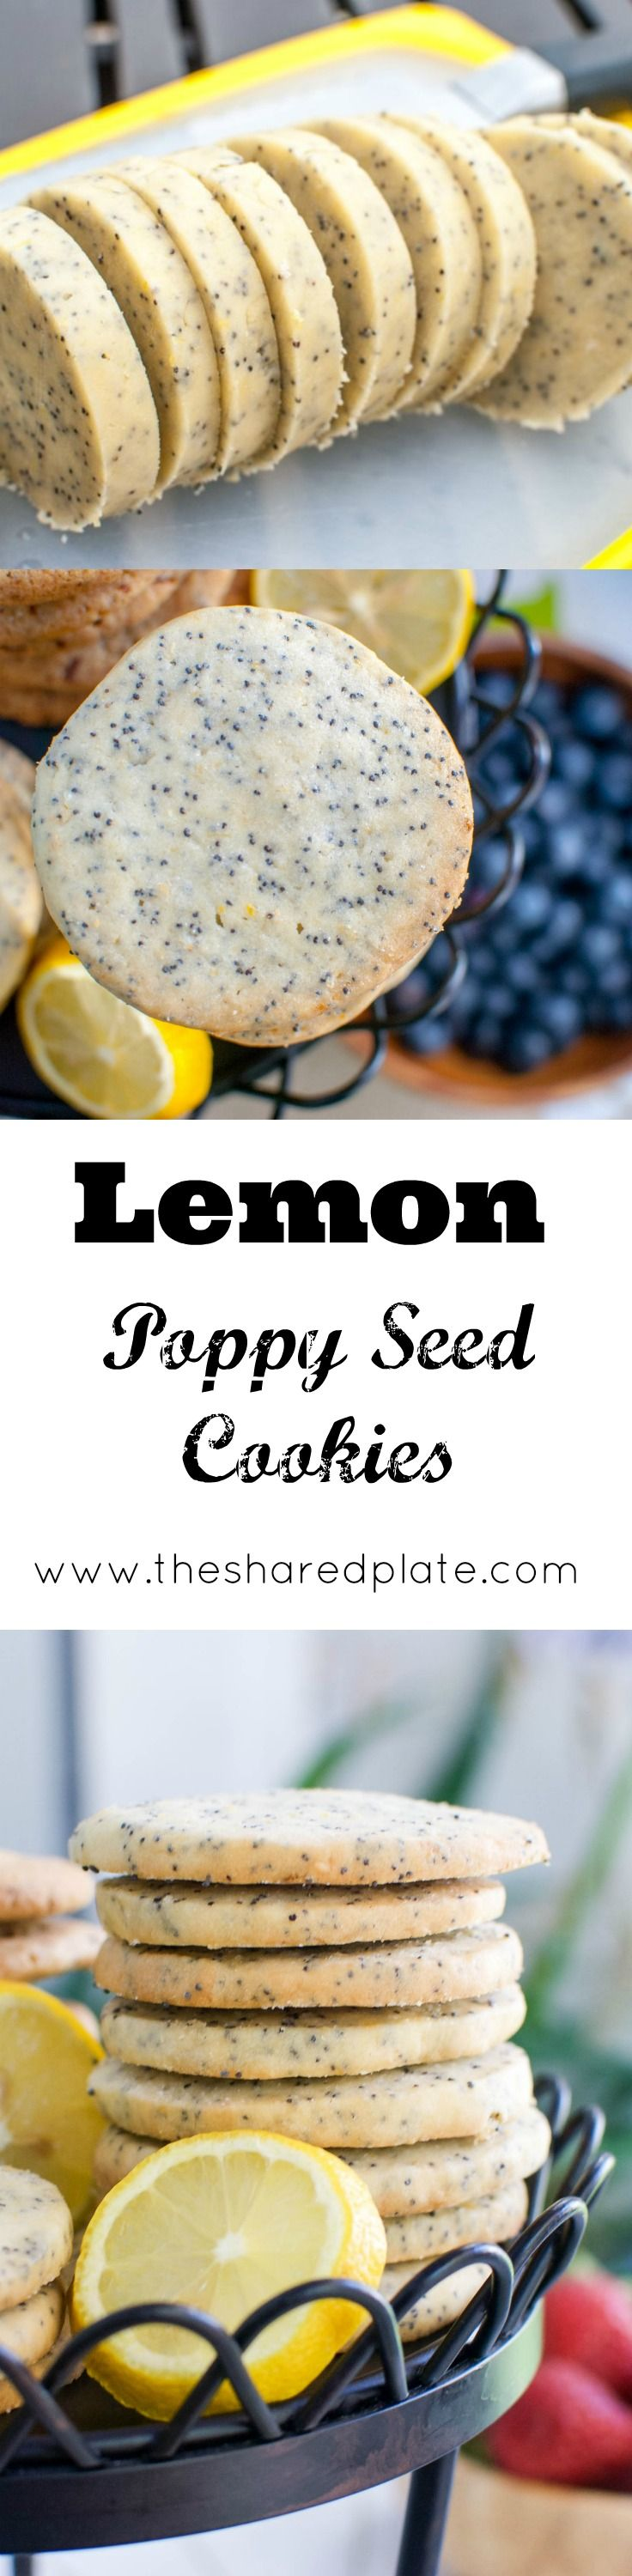 These Lemon Poppy Seed Cookies are addictively crisp, with a tender crumb and are a perfect addition to any cookie assortment.